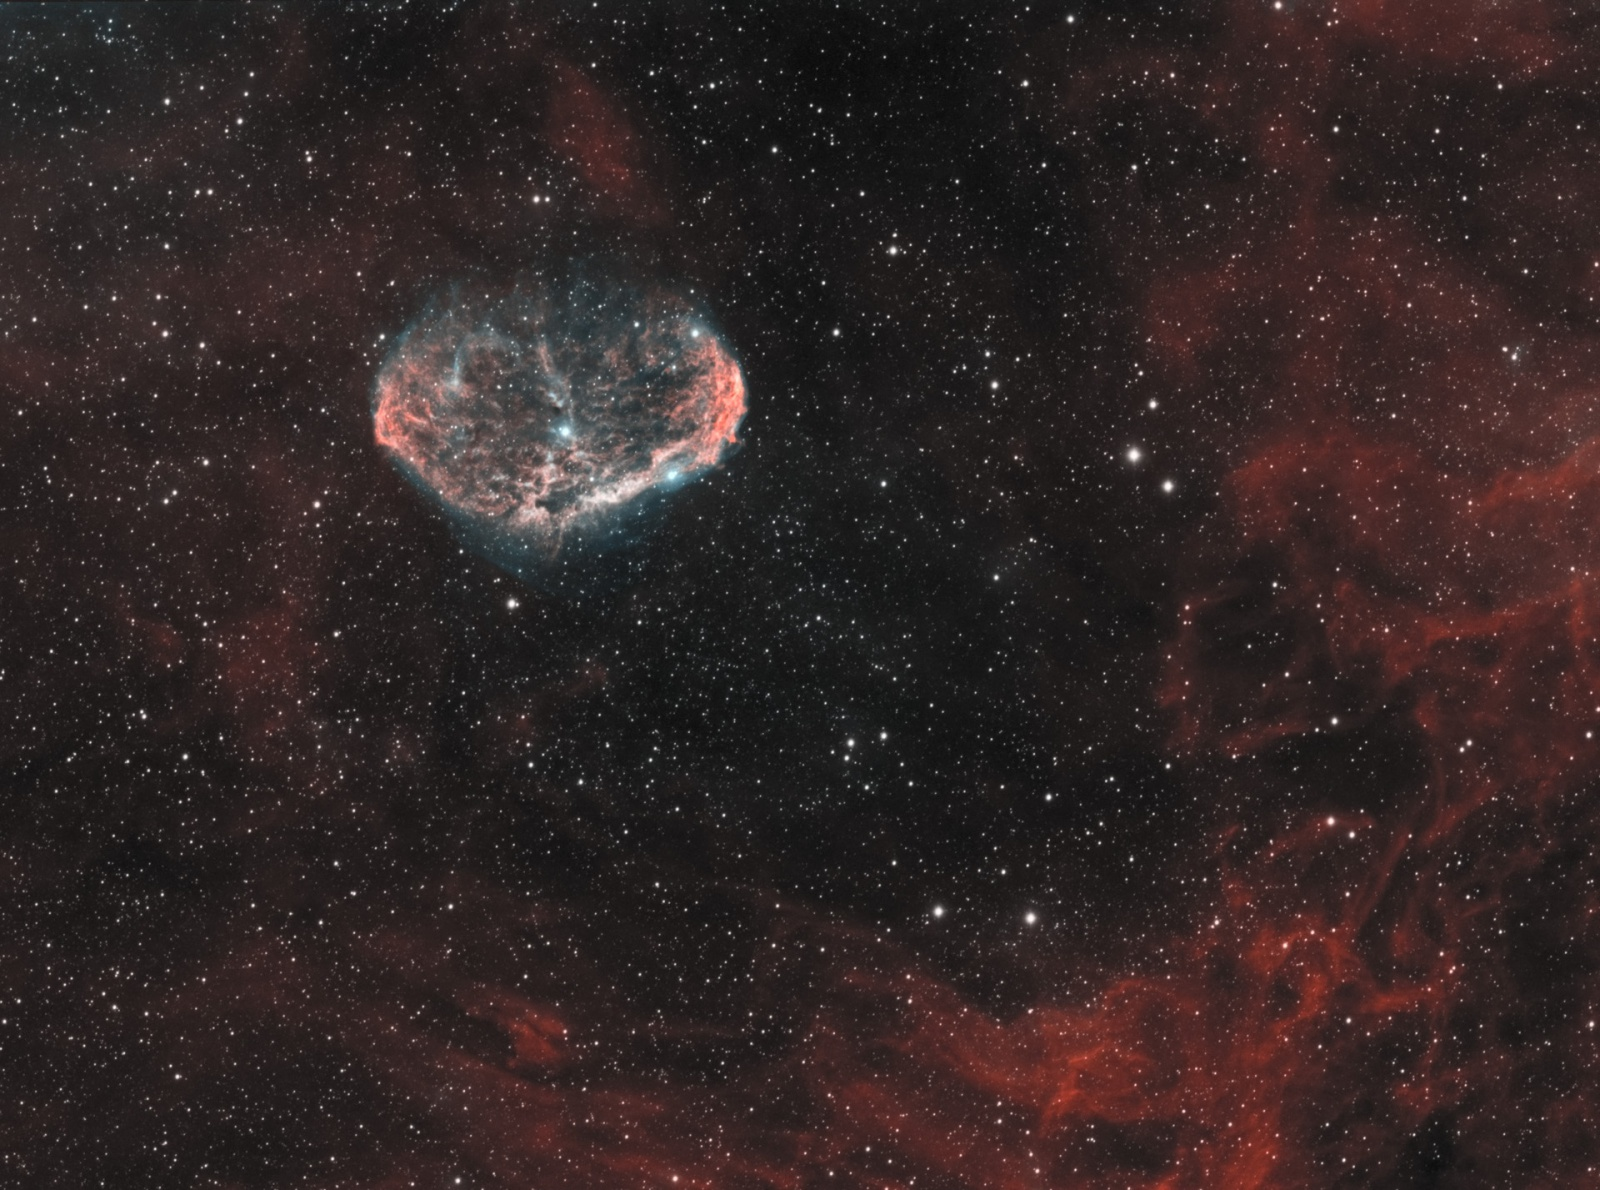 NGC6888_HST_MIXSHO_AIP_denoise_1920px.jpg